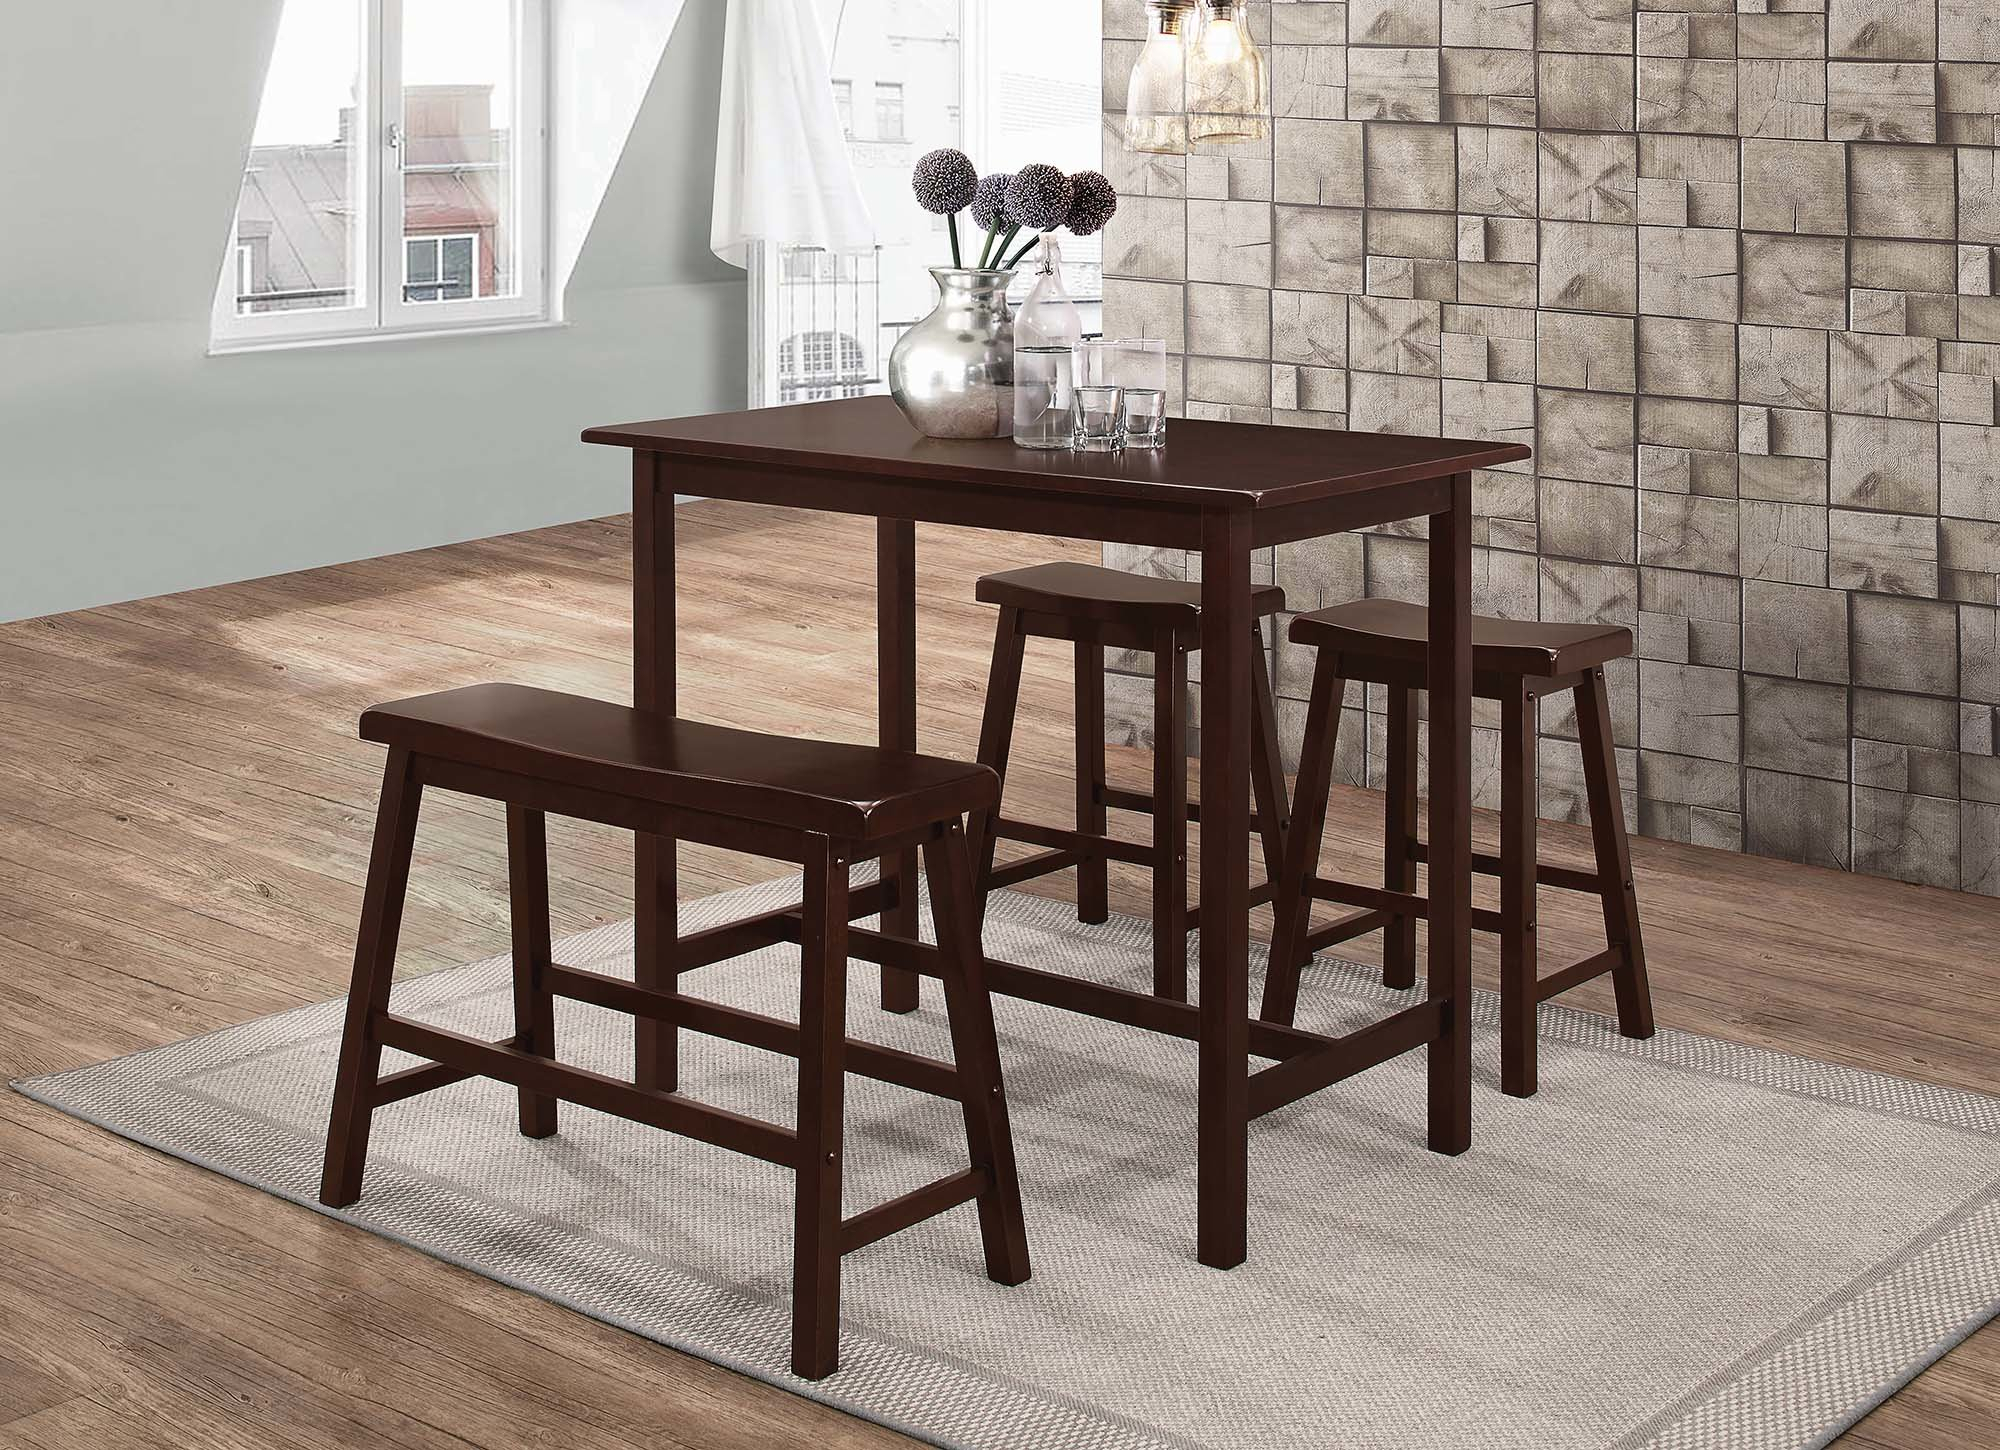 Tassone 4 Piece Dining Set For Most Current Kernville 3 Piece Counter Height Dining Sets (Image 16 of 20)